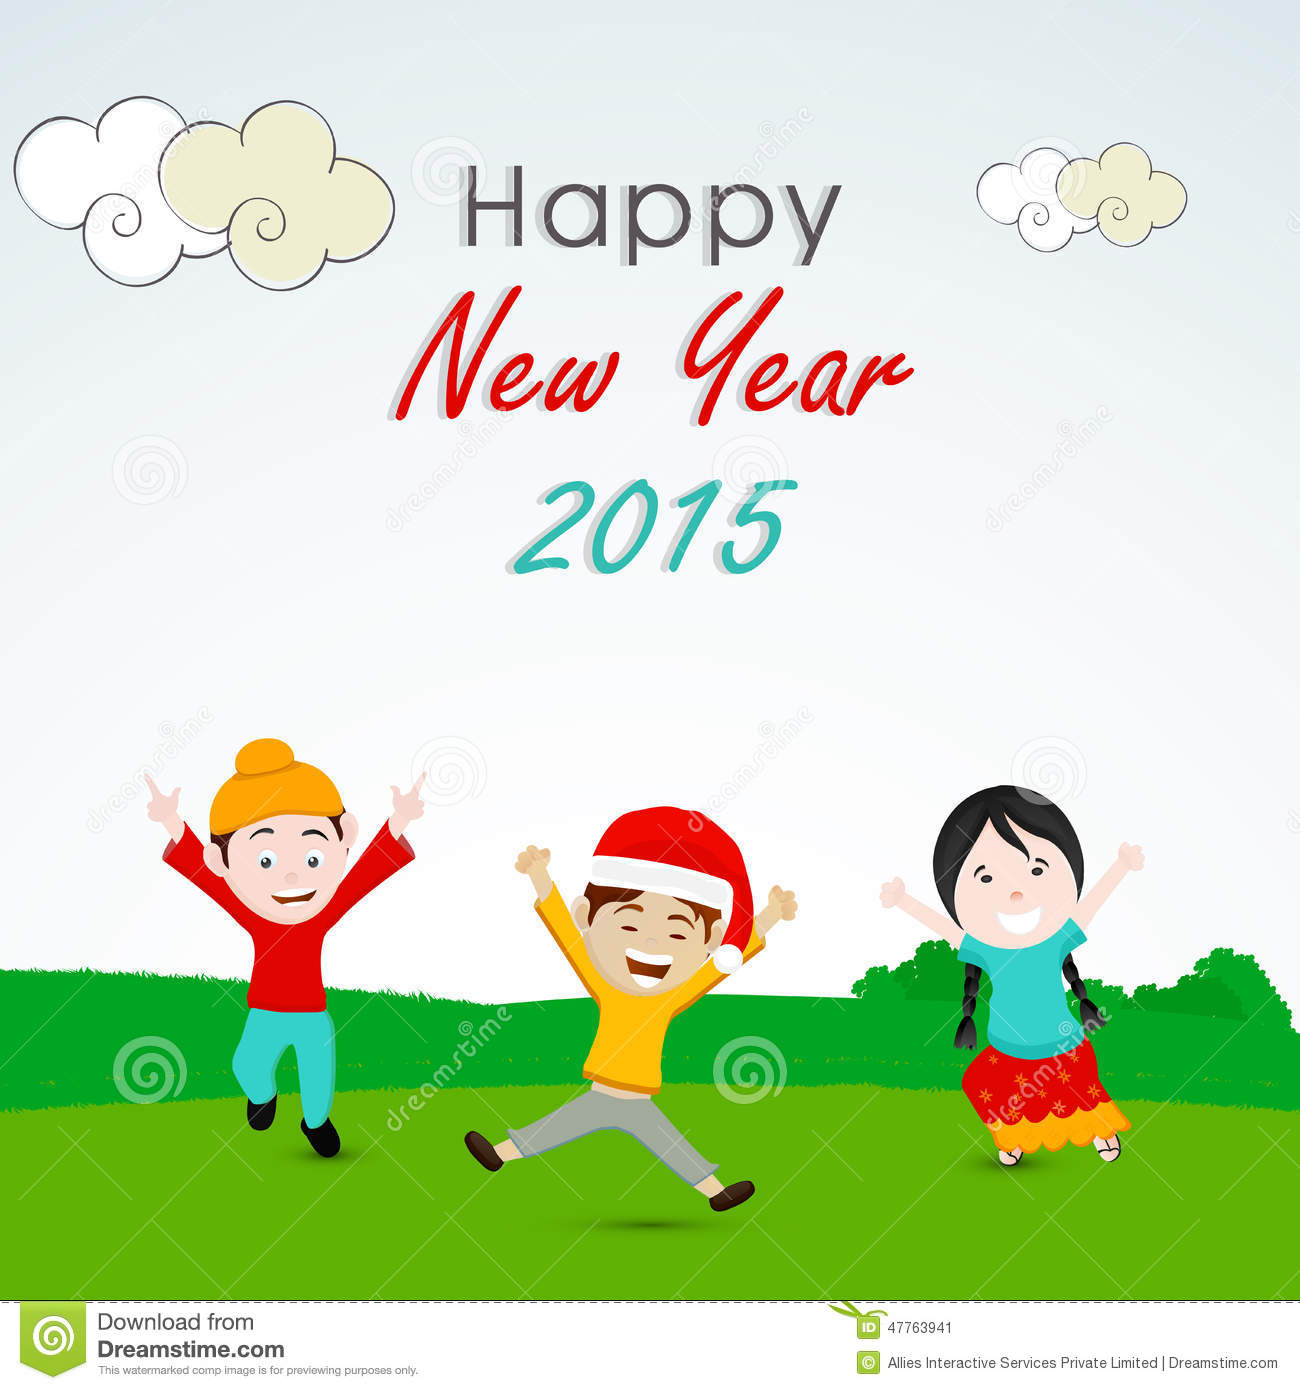 greeting card design for happy new year 2015 celebrations